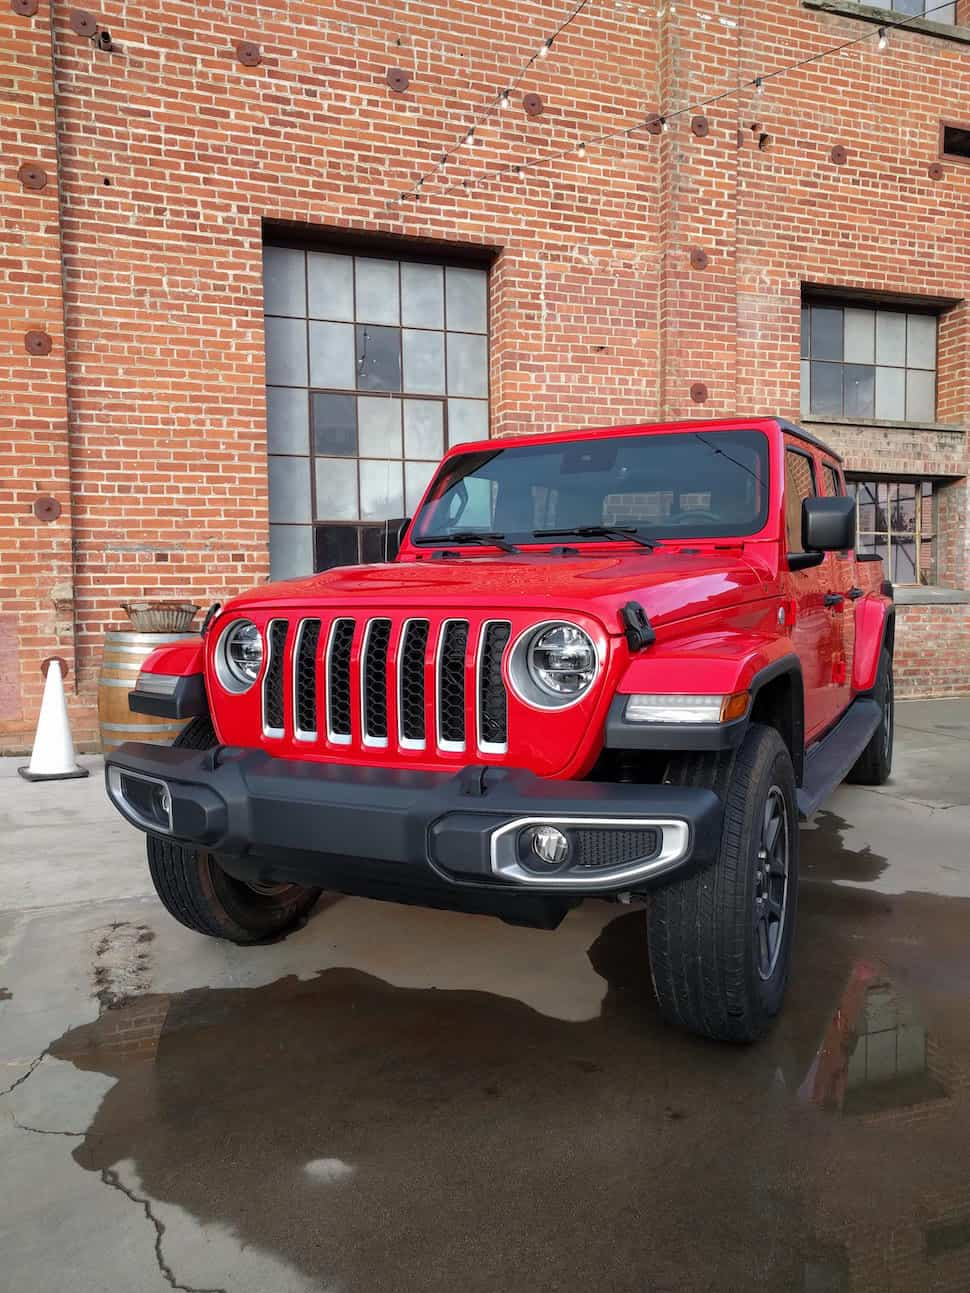 2020 jeep gladiator new truck front view clean